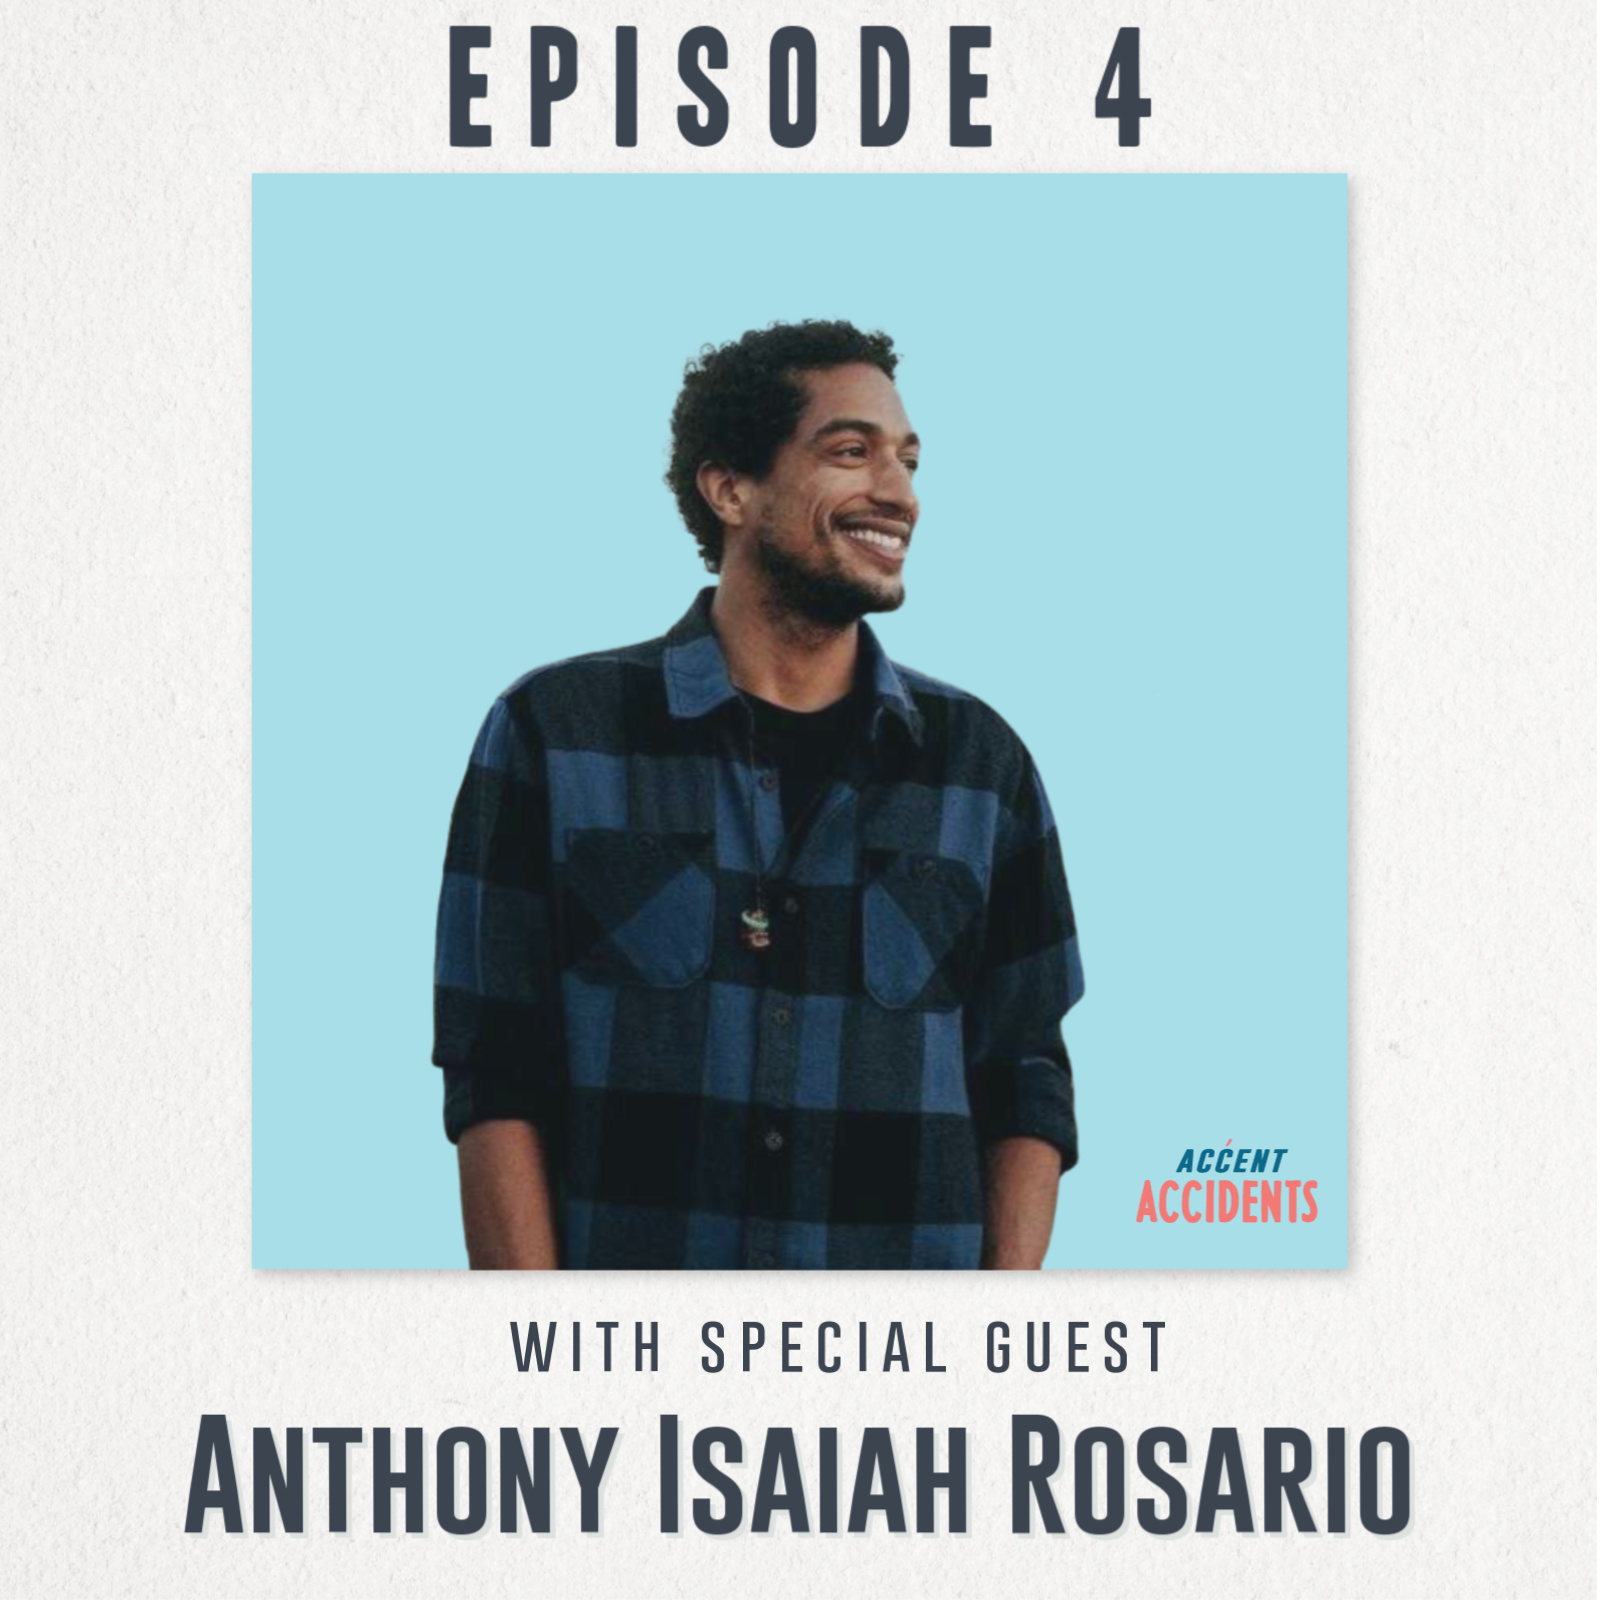 Ep. 4 What's in a Name? With special guest Anthony Isaiah Rosario